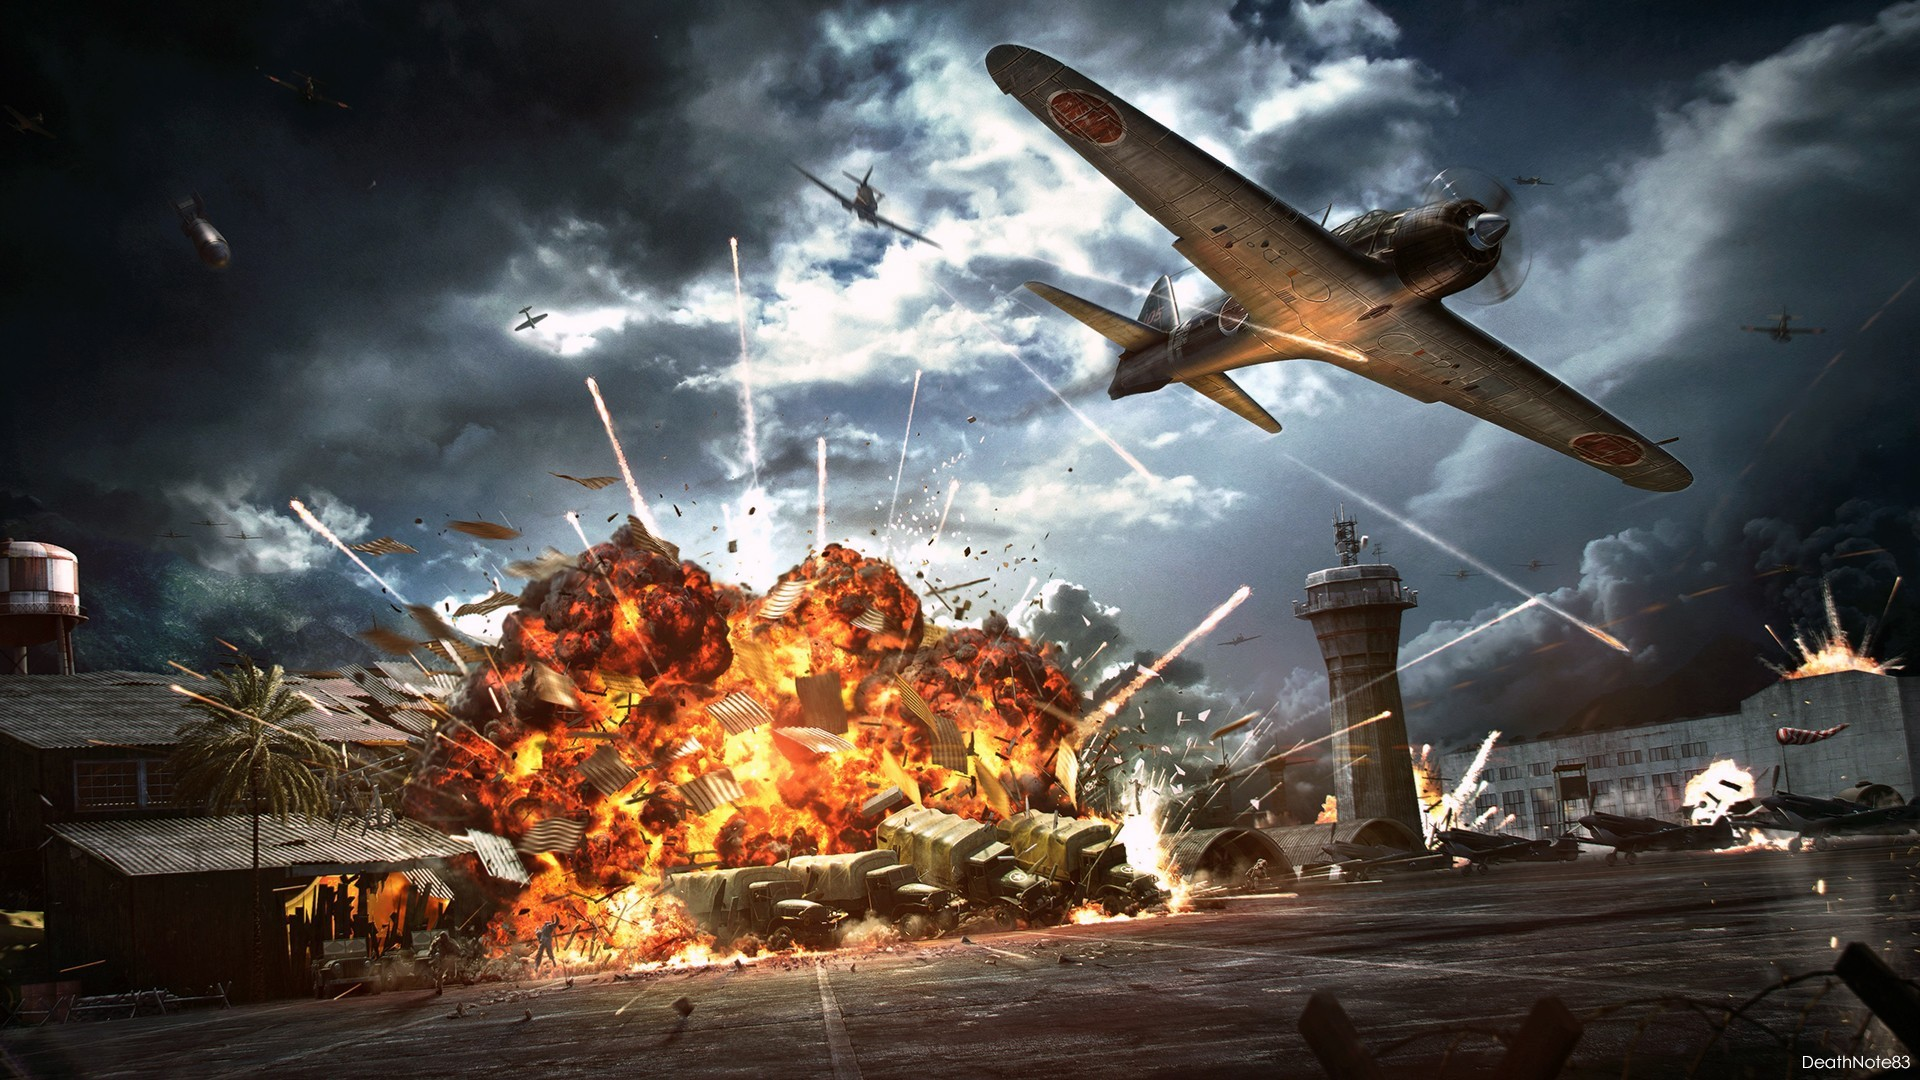 Actual Combat Footage WW2 | aircraft, War, battle, plane in the sky  wallpapers